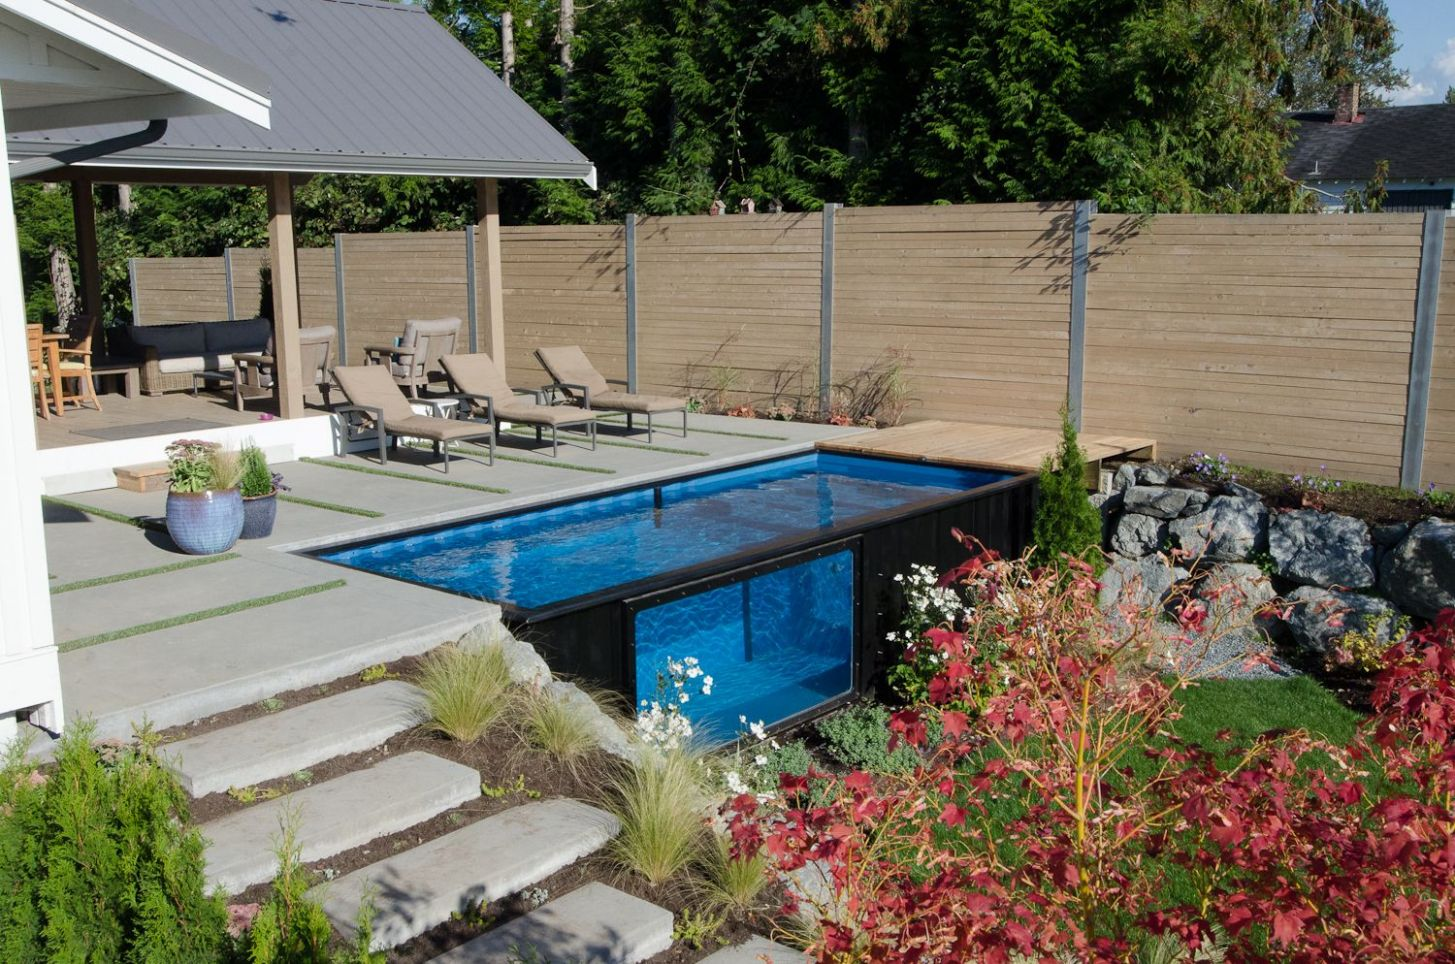 12 In-Ground Pool Designs - Best Swimming Pool Design Ideas for ...